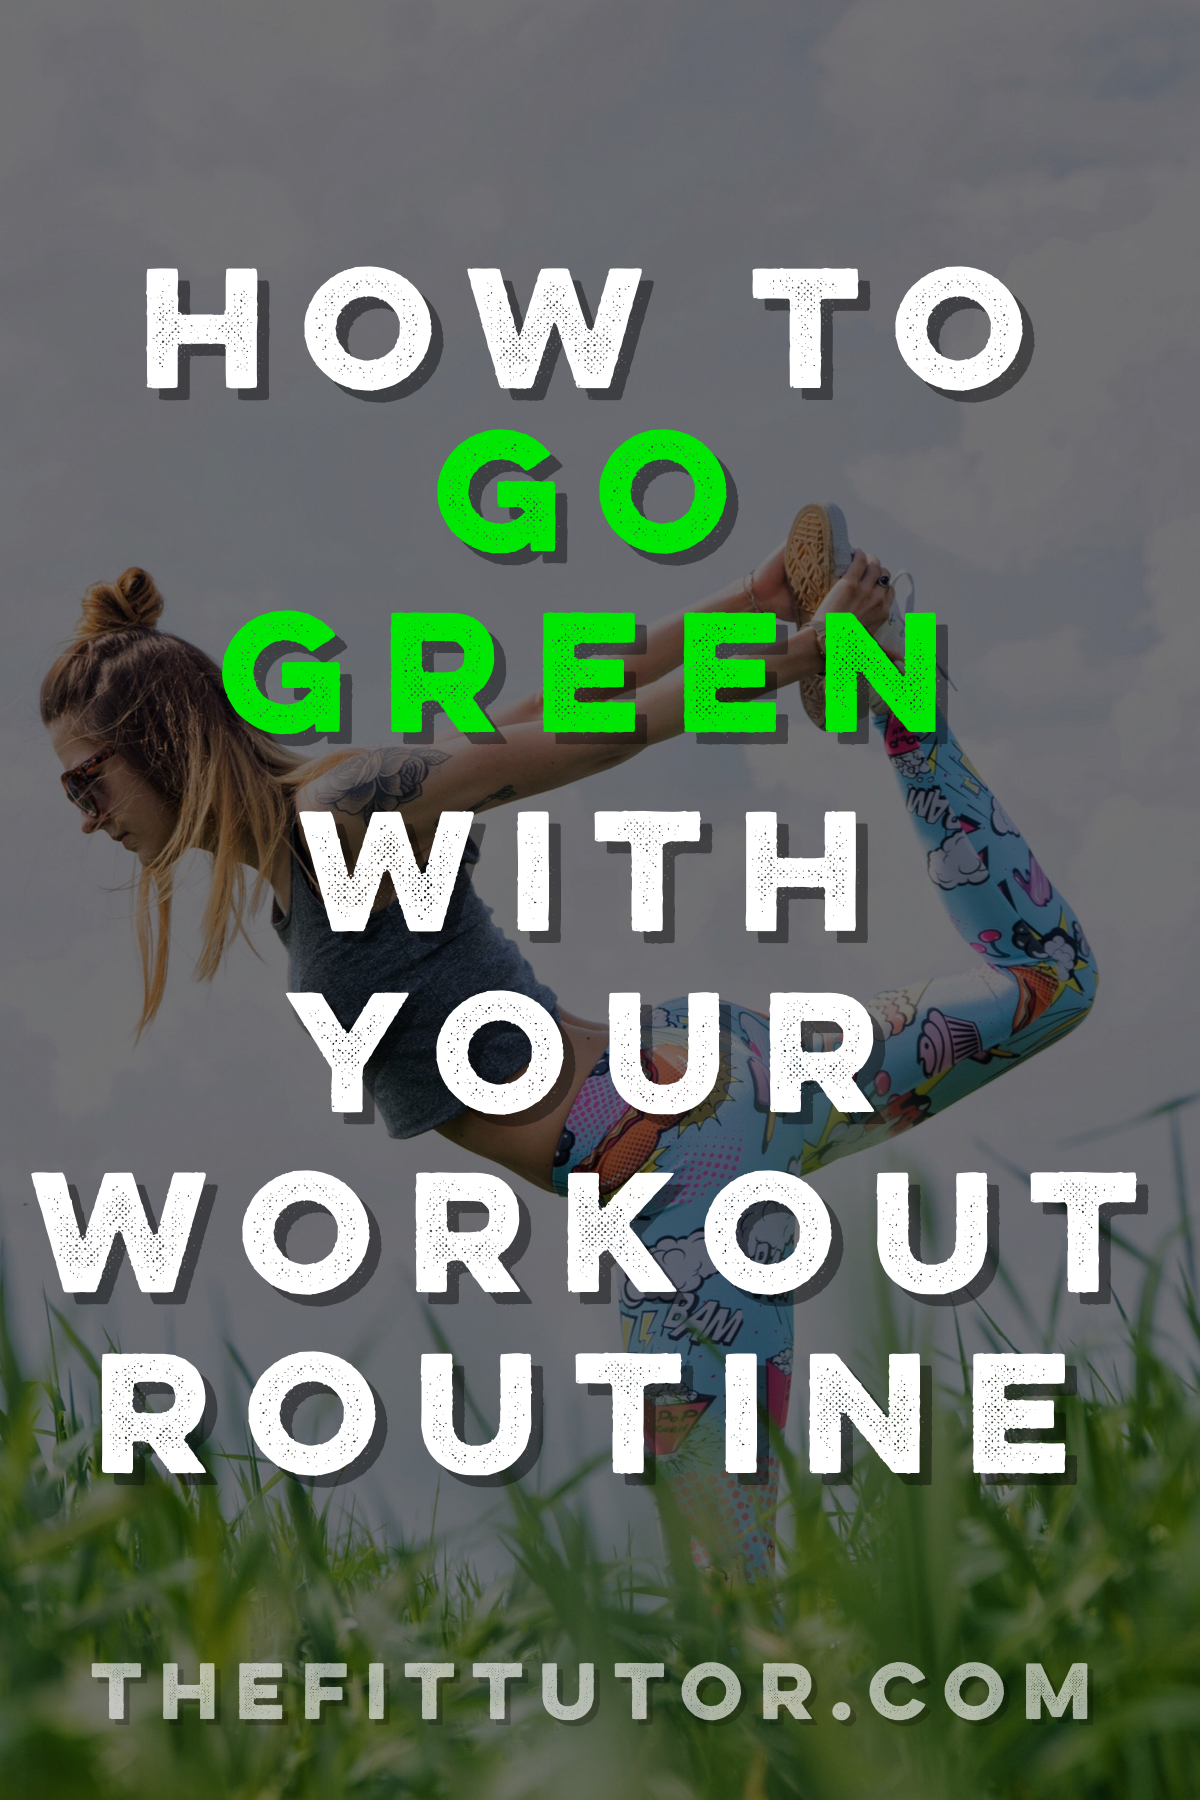 How to go green with your health and fitness routine! check out these tips to get you started! Go Green Workout!